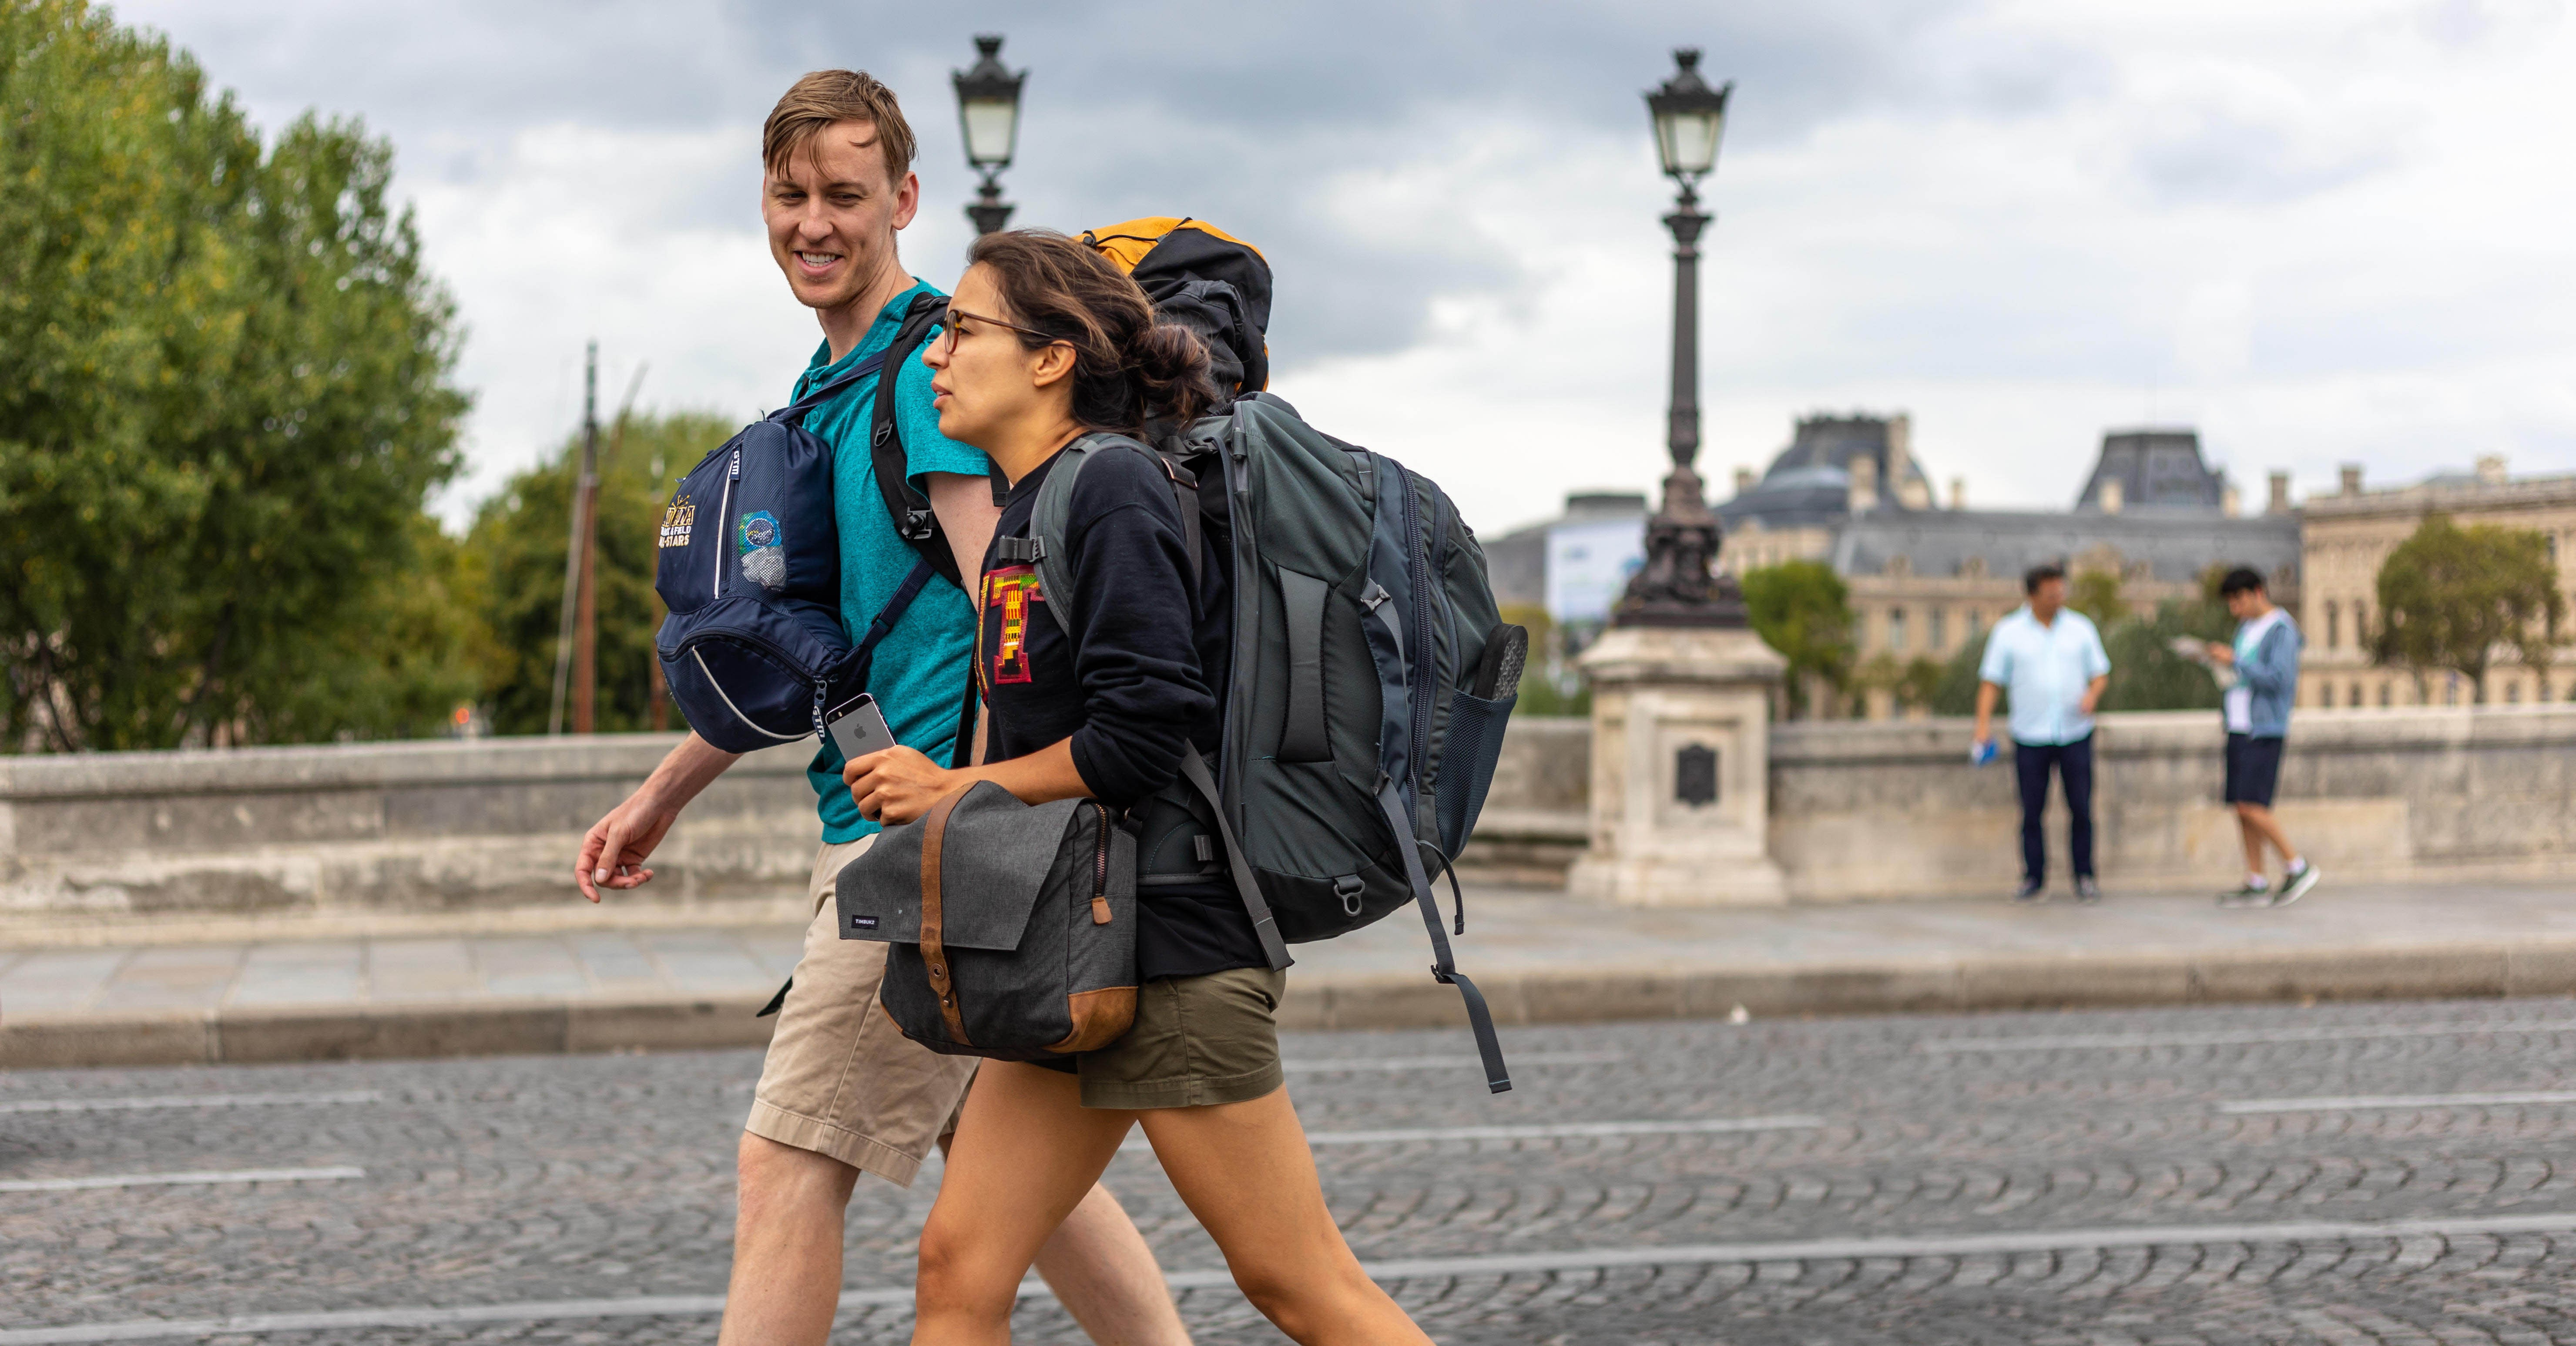 Paris is an expensive city, but it is possible to visit on a budget